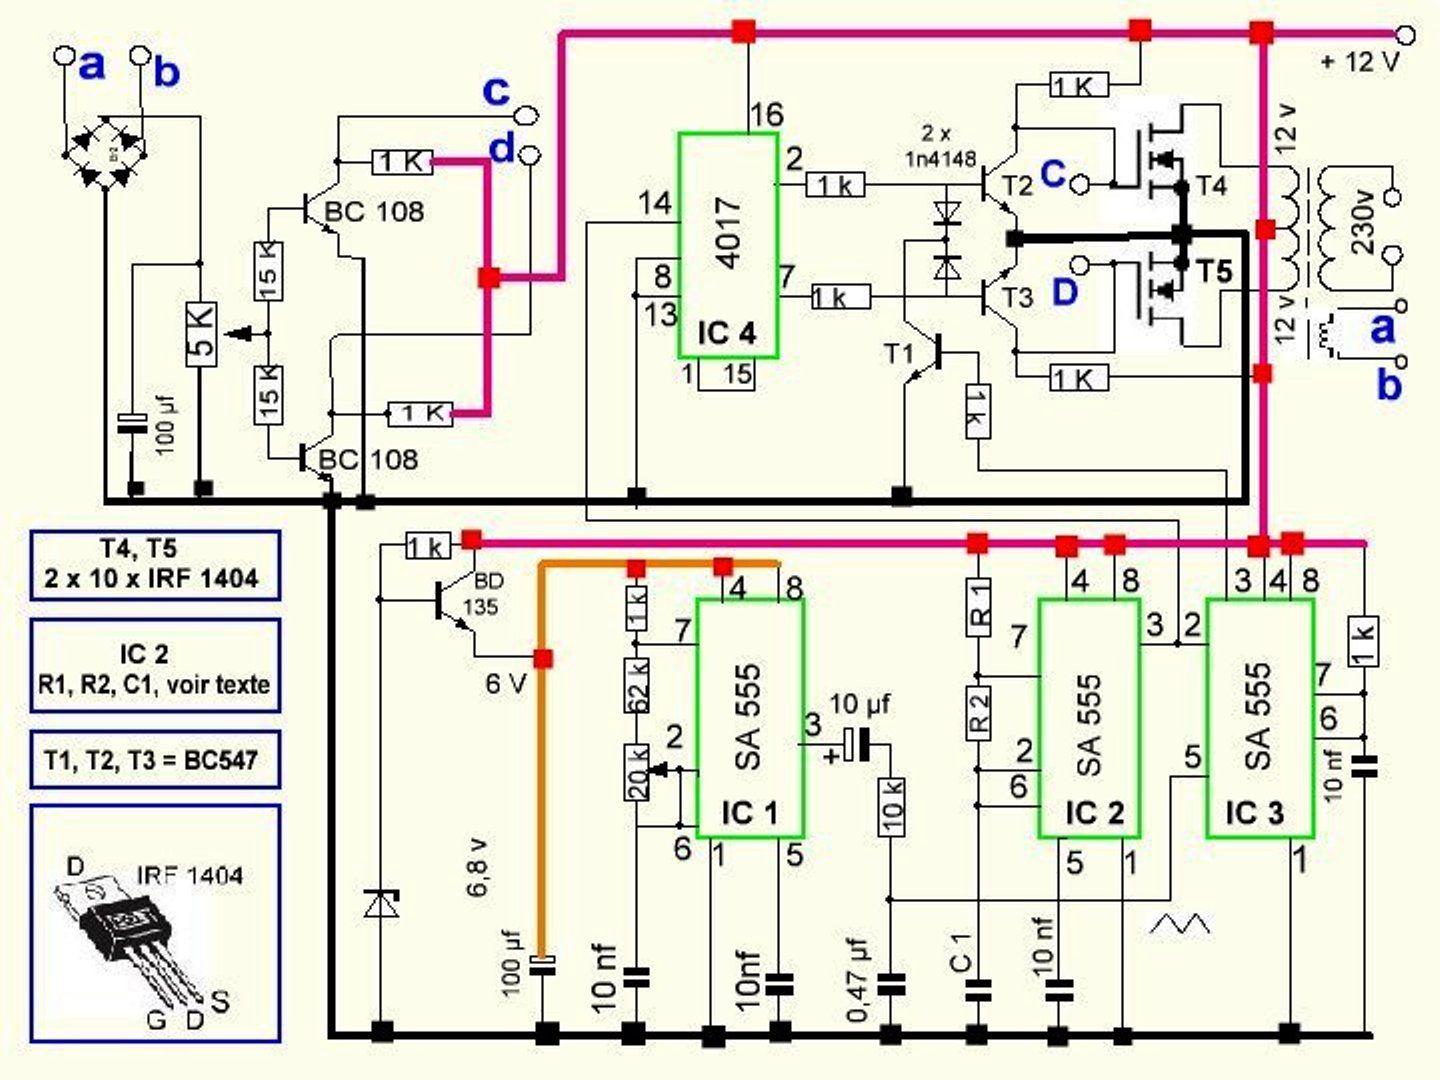 300 Watts Pwm Controlled Pure Sine Wave Inverter Homemade Circuit Projects Circuit Diagram Sine Wave Circuit Projects